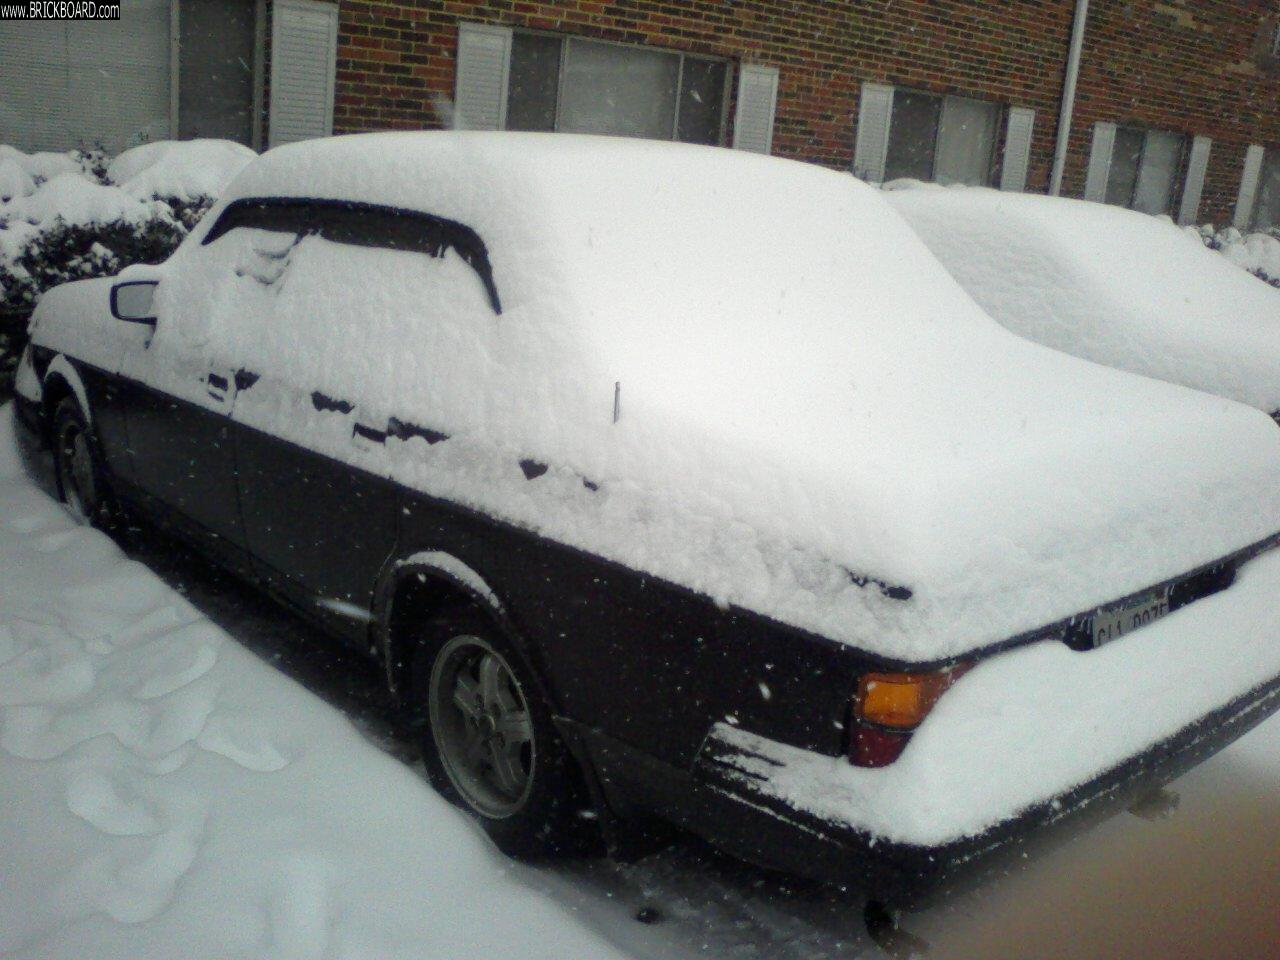 Volvo 200 -- 93 244 winter blanket